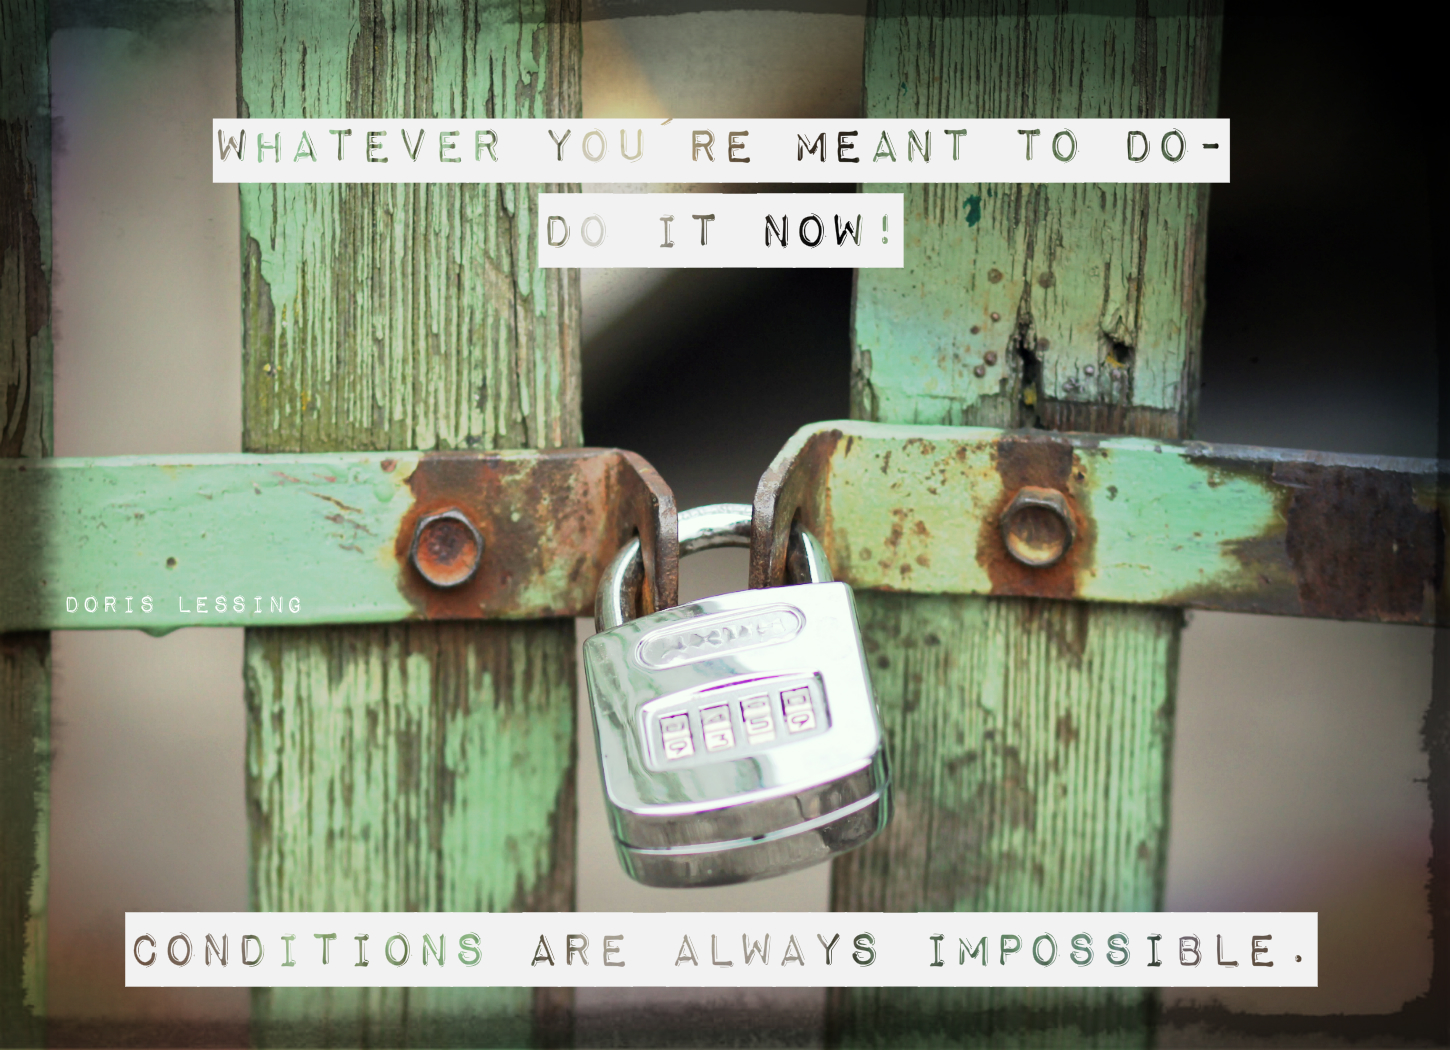 Whatever you're meant to do - Do it now! Conditions are always impossible.